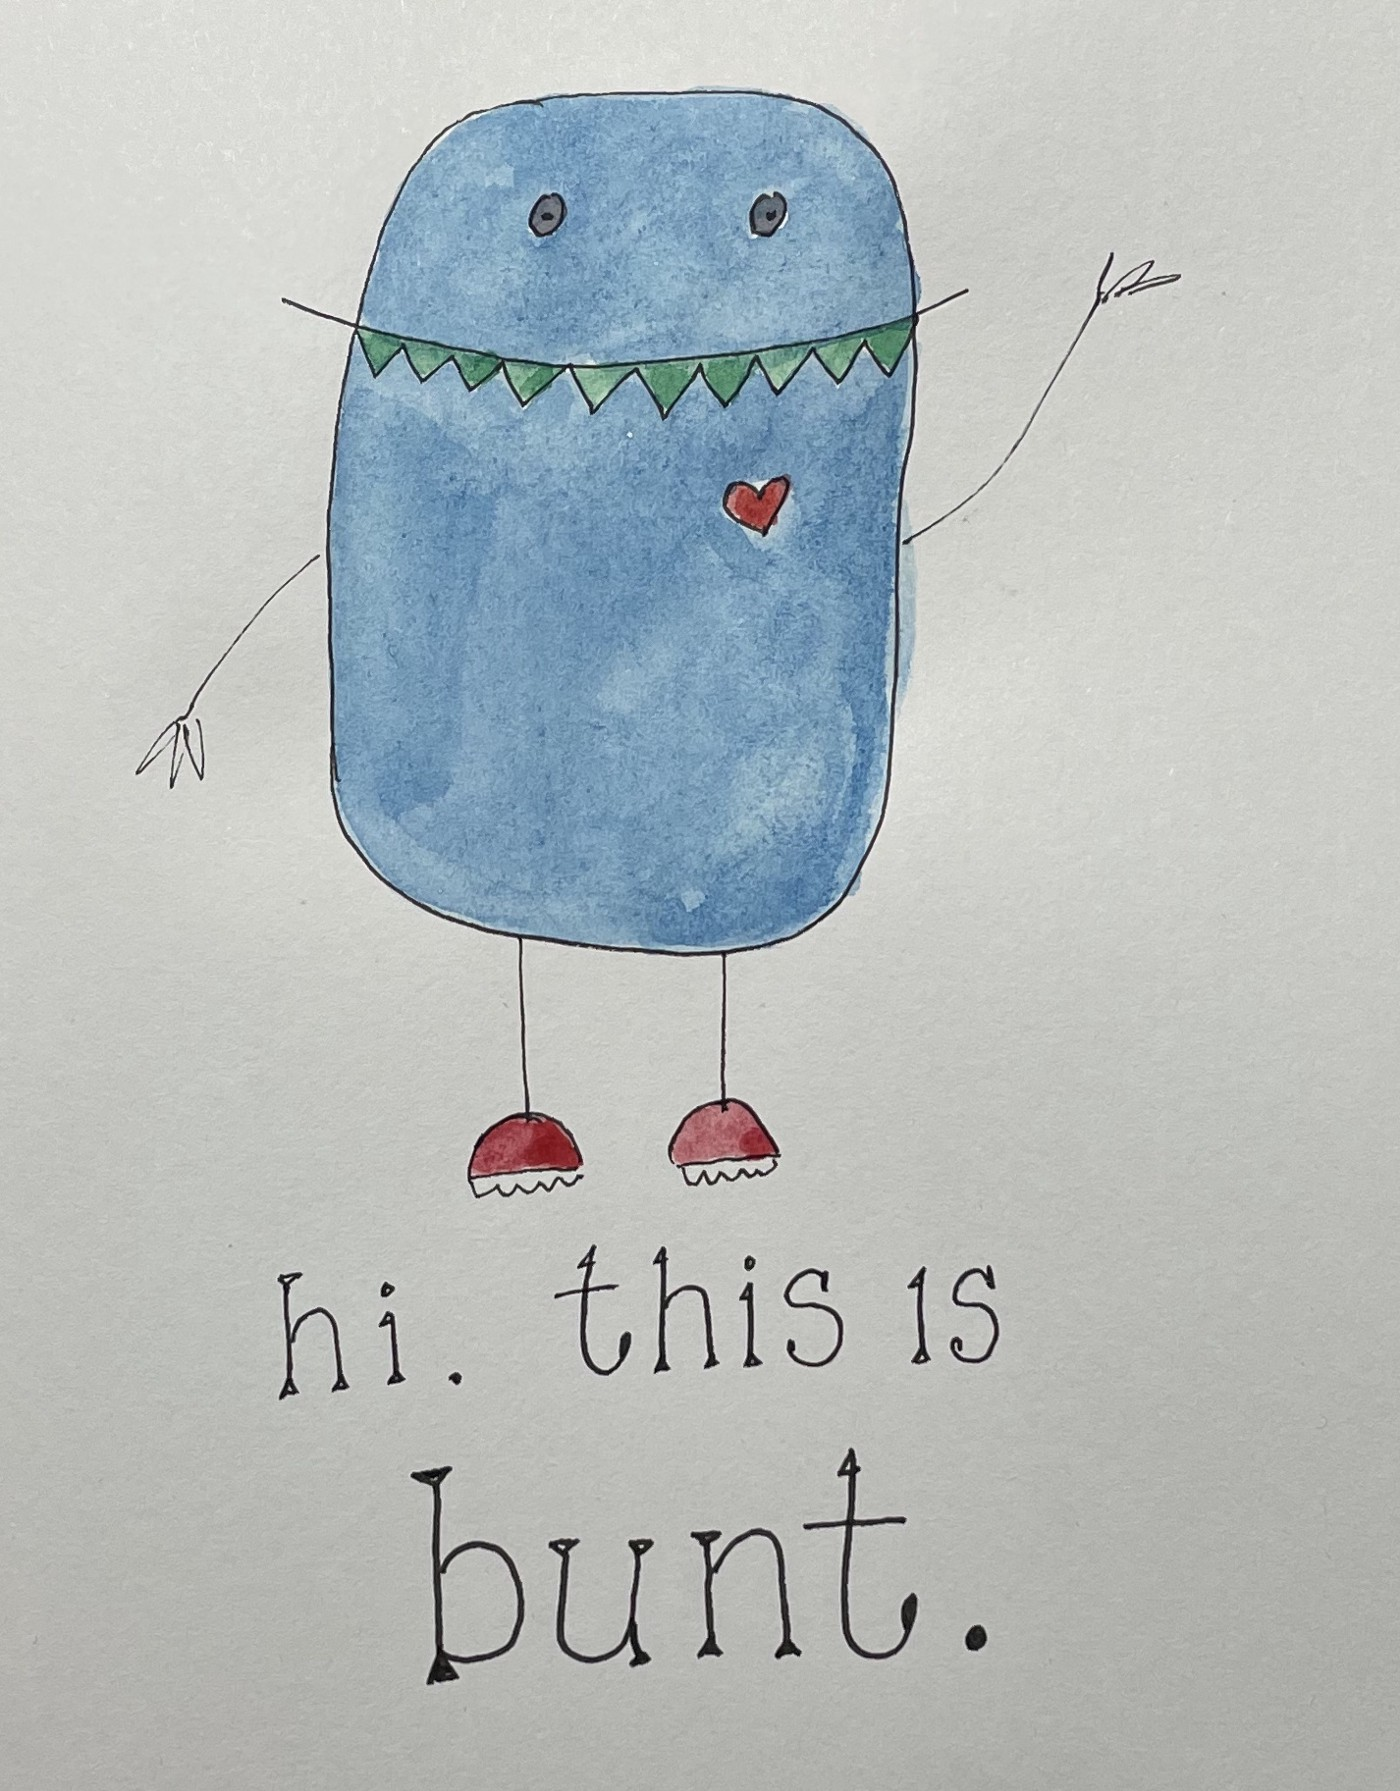 """watercolor of a little blue rounded monster shaped a little like an airplane window. He has triangular teeth in a smiling mouth that extends beyond his body, set close to to the top of the """"window,"""" and a heart, and is wearing red sneakers and waving with stick-figure arms. Hand-lettering in typeface script reads """"hi. this is bunt."""""""